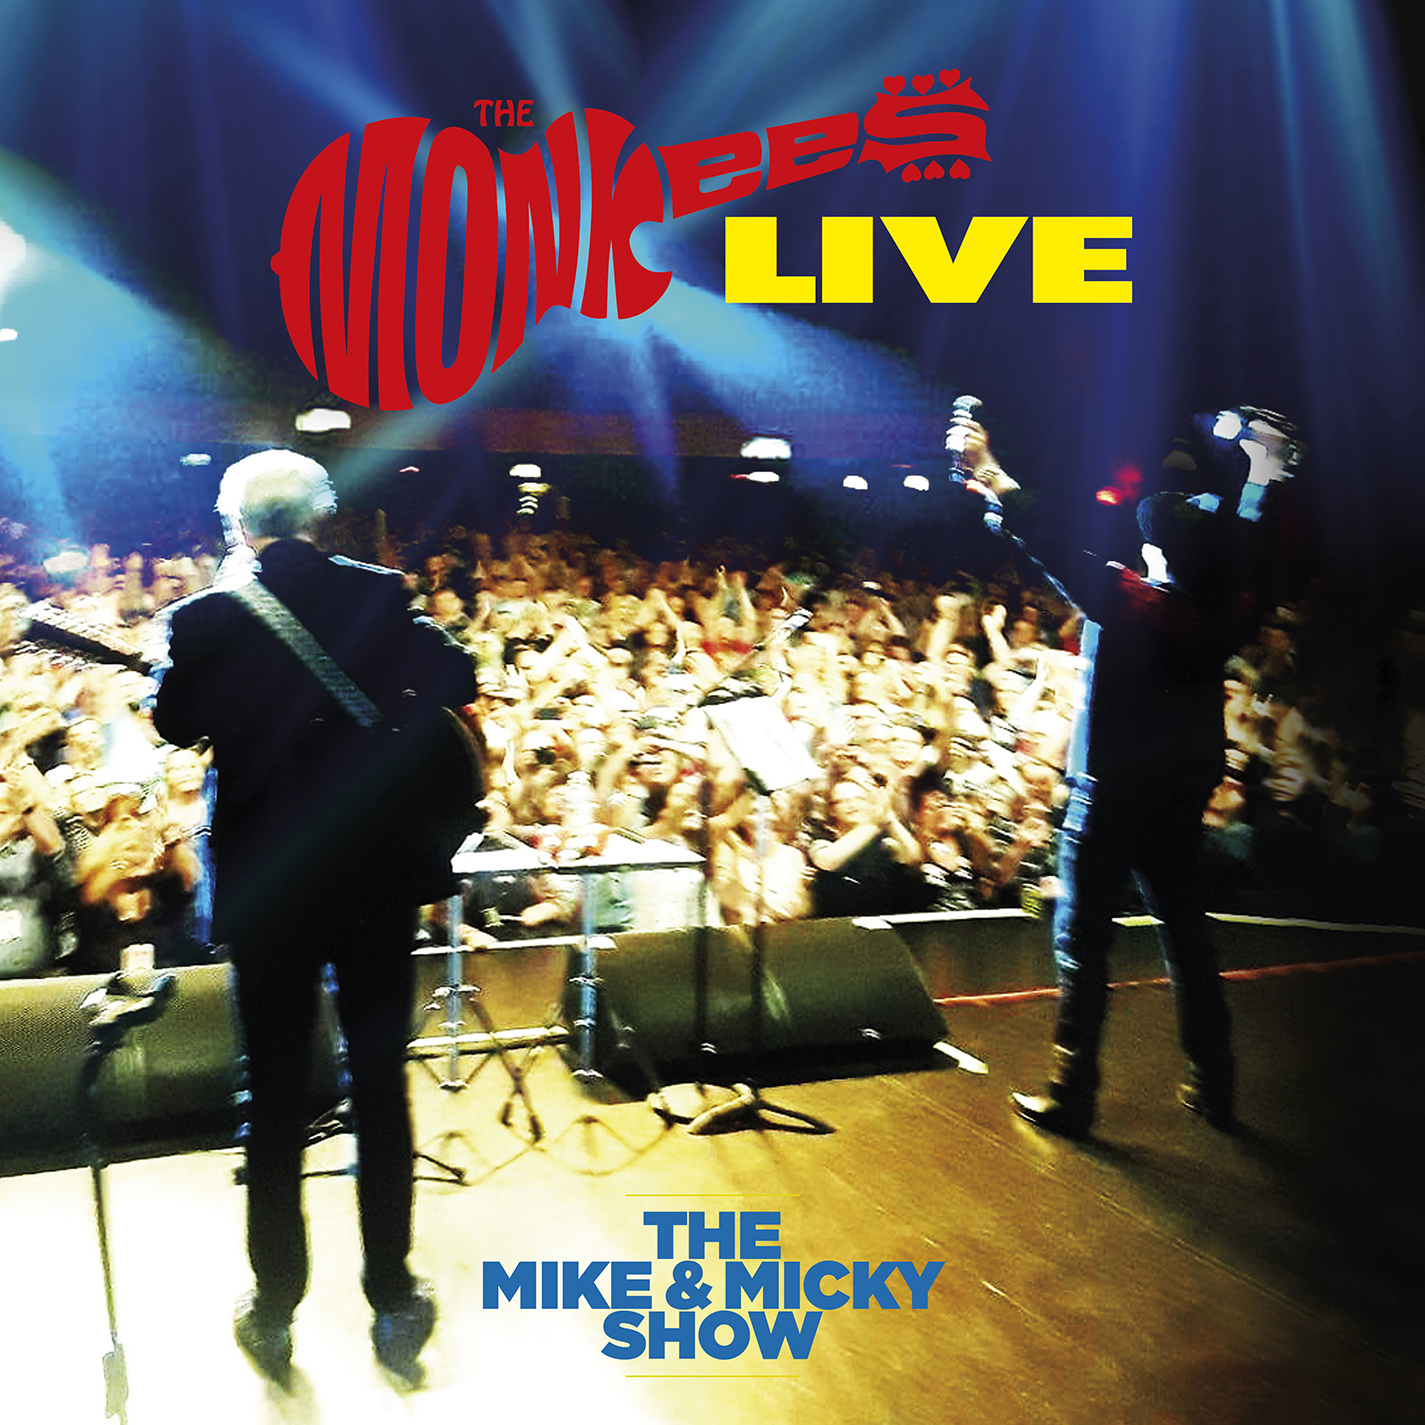 The Monkees The Mike & Micky Show Live LP